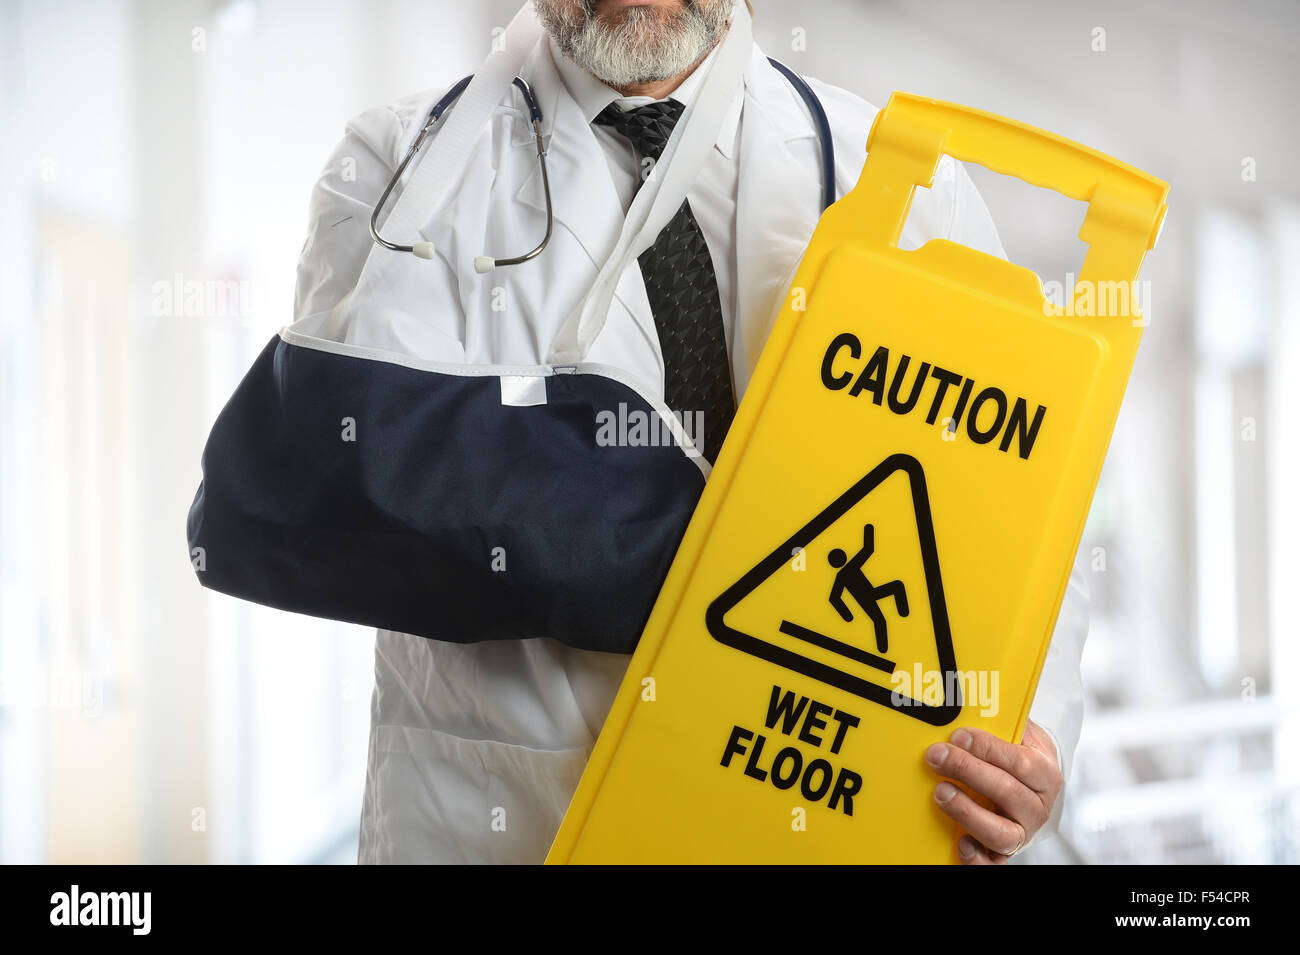 Senior doctor holding caution sign while wearing elbow sling inside building - Stock Image